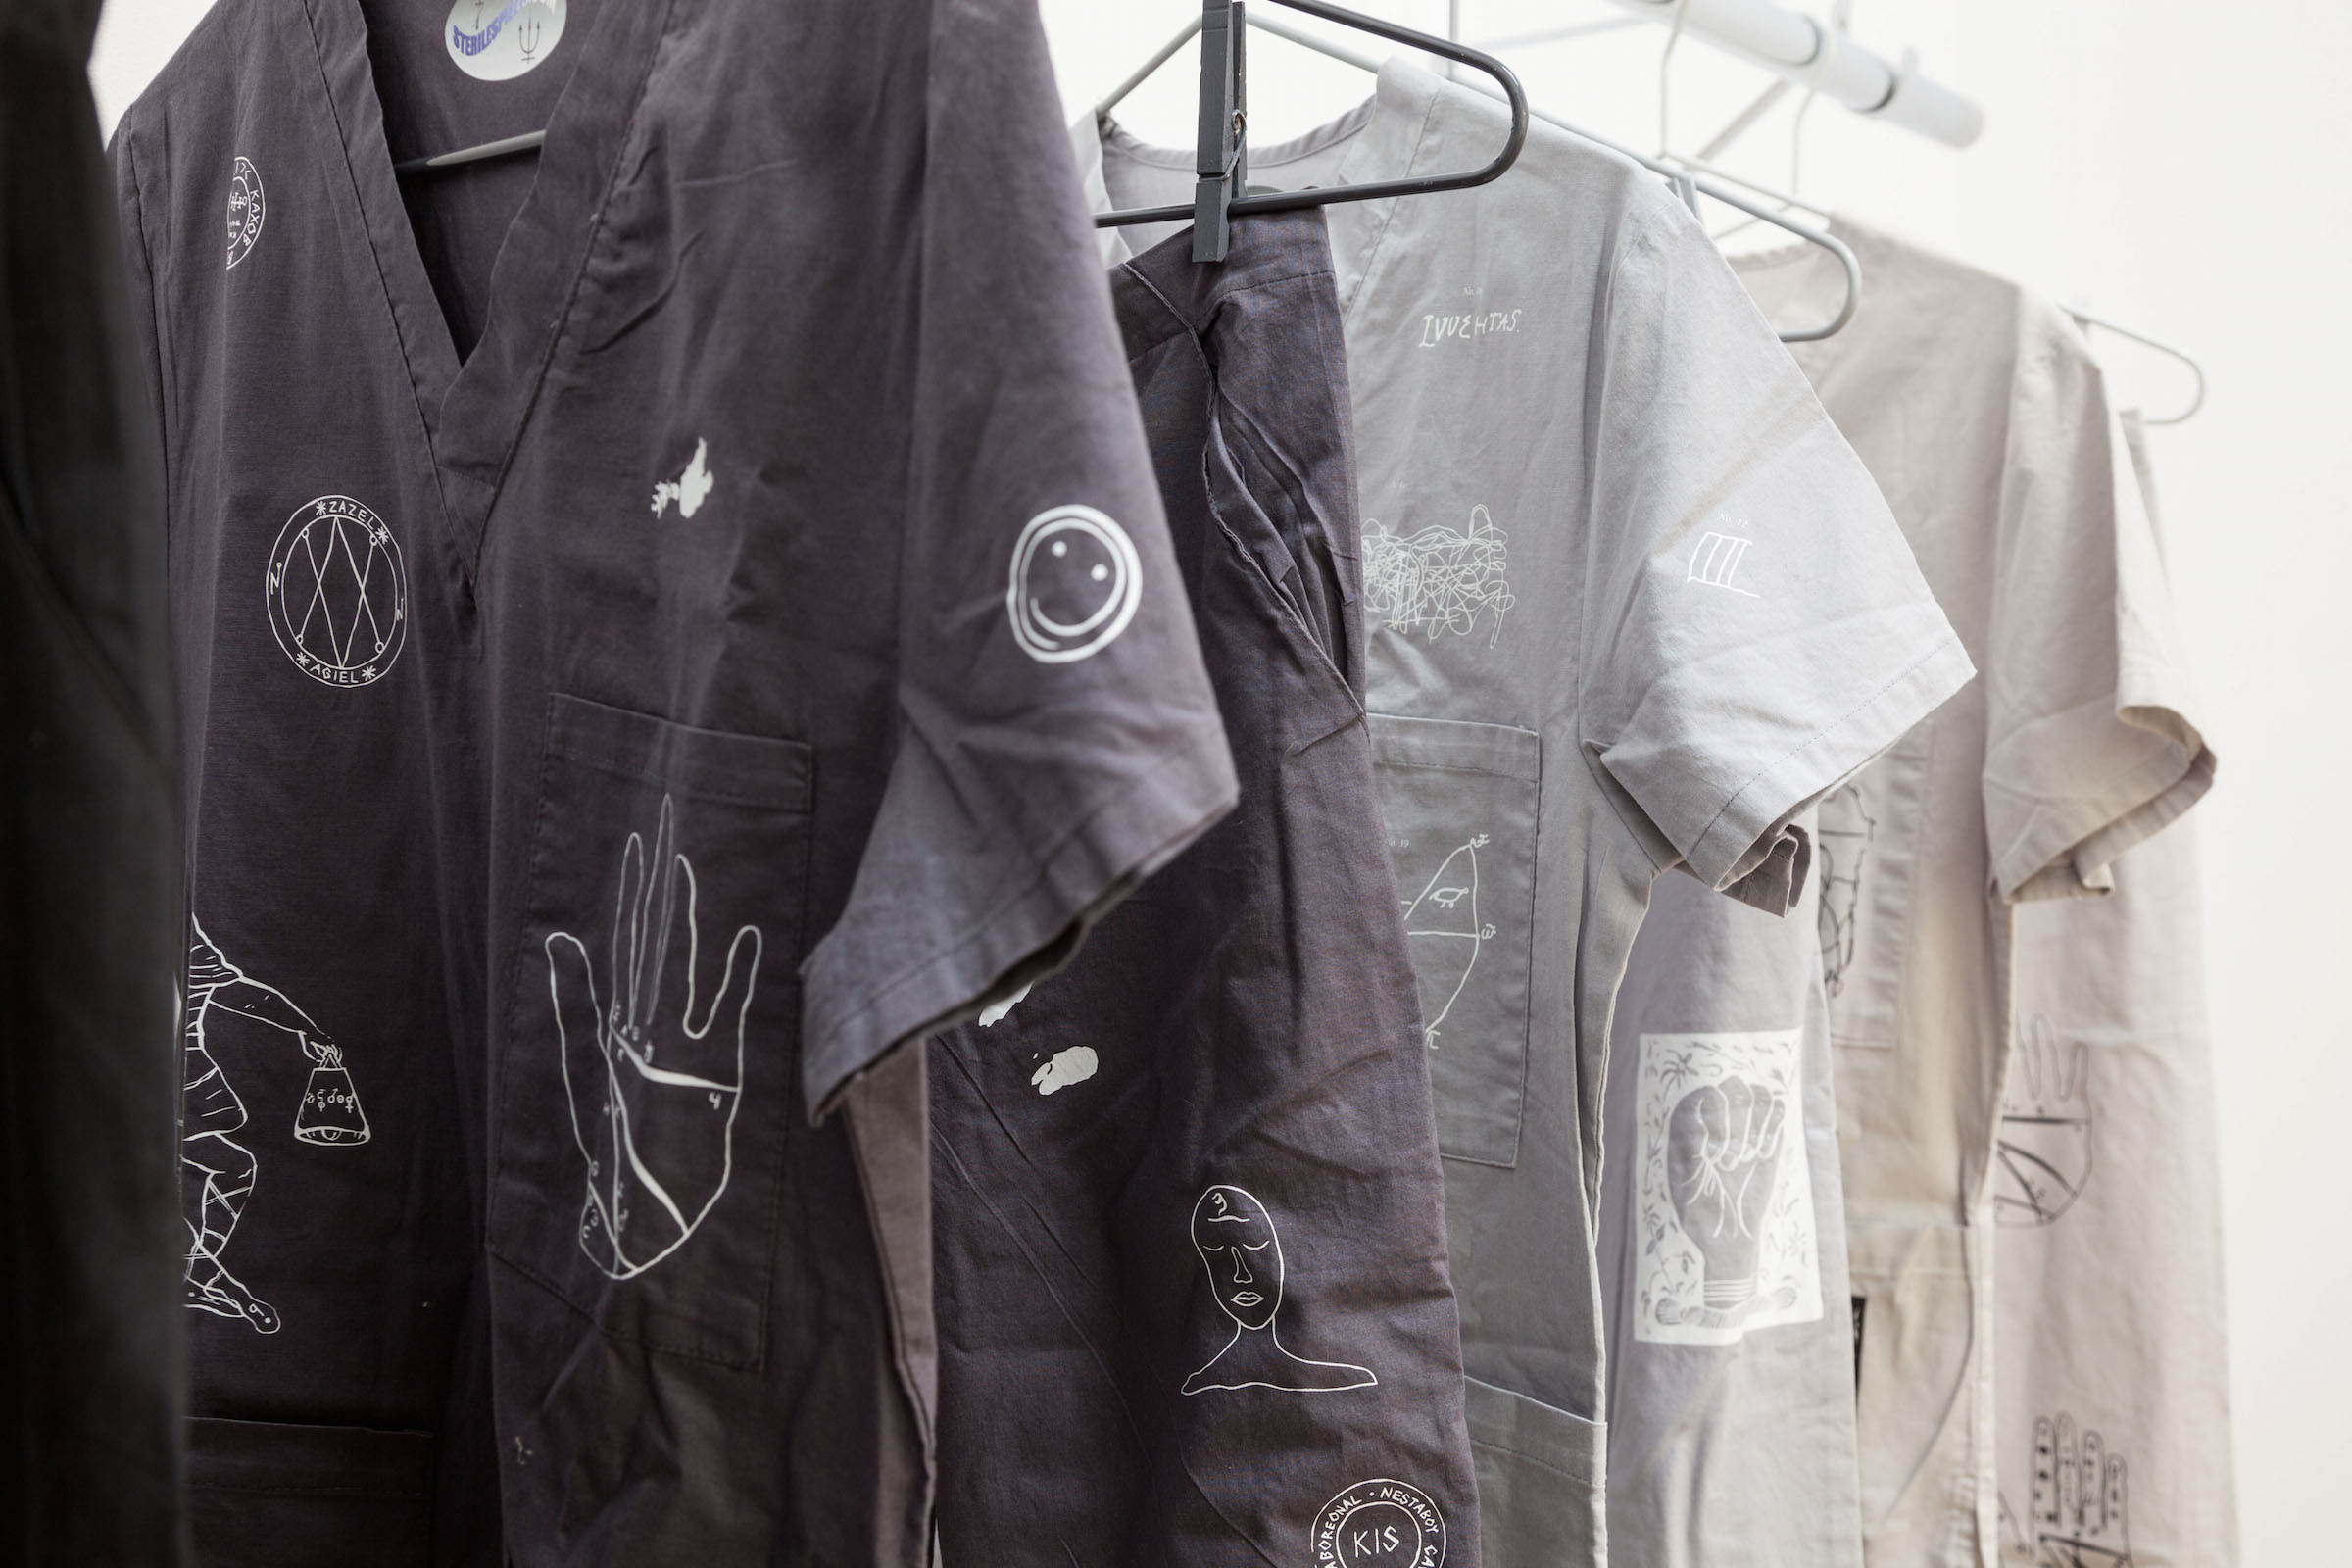 Natalie Labriola, Uniforms For Psychic Protection  (detail), 2015,powder coated steel hangers, painted clothes pins, custom made heat-pressed cotton garments, chrome garment rack, dimensions variable